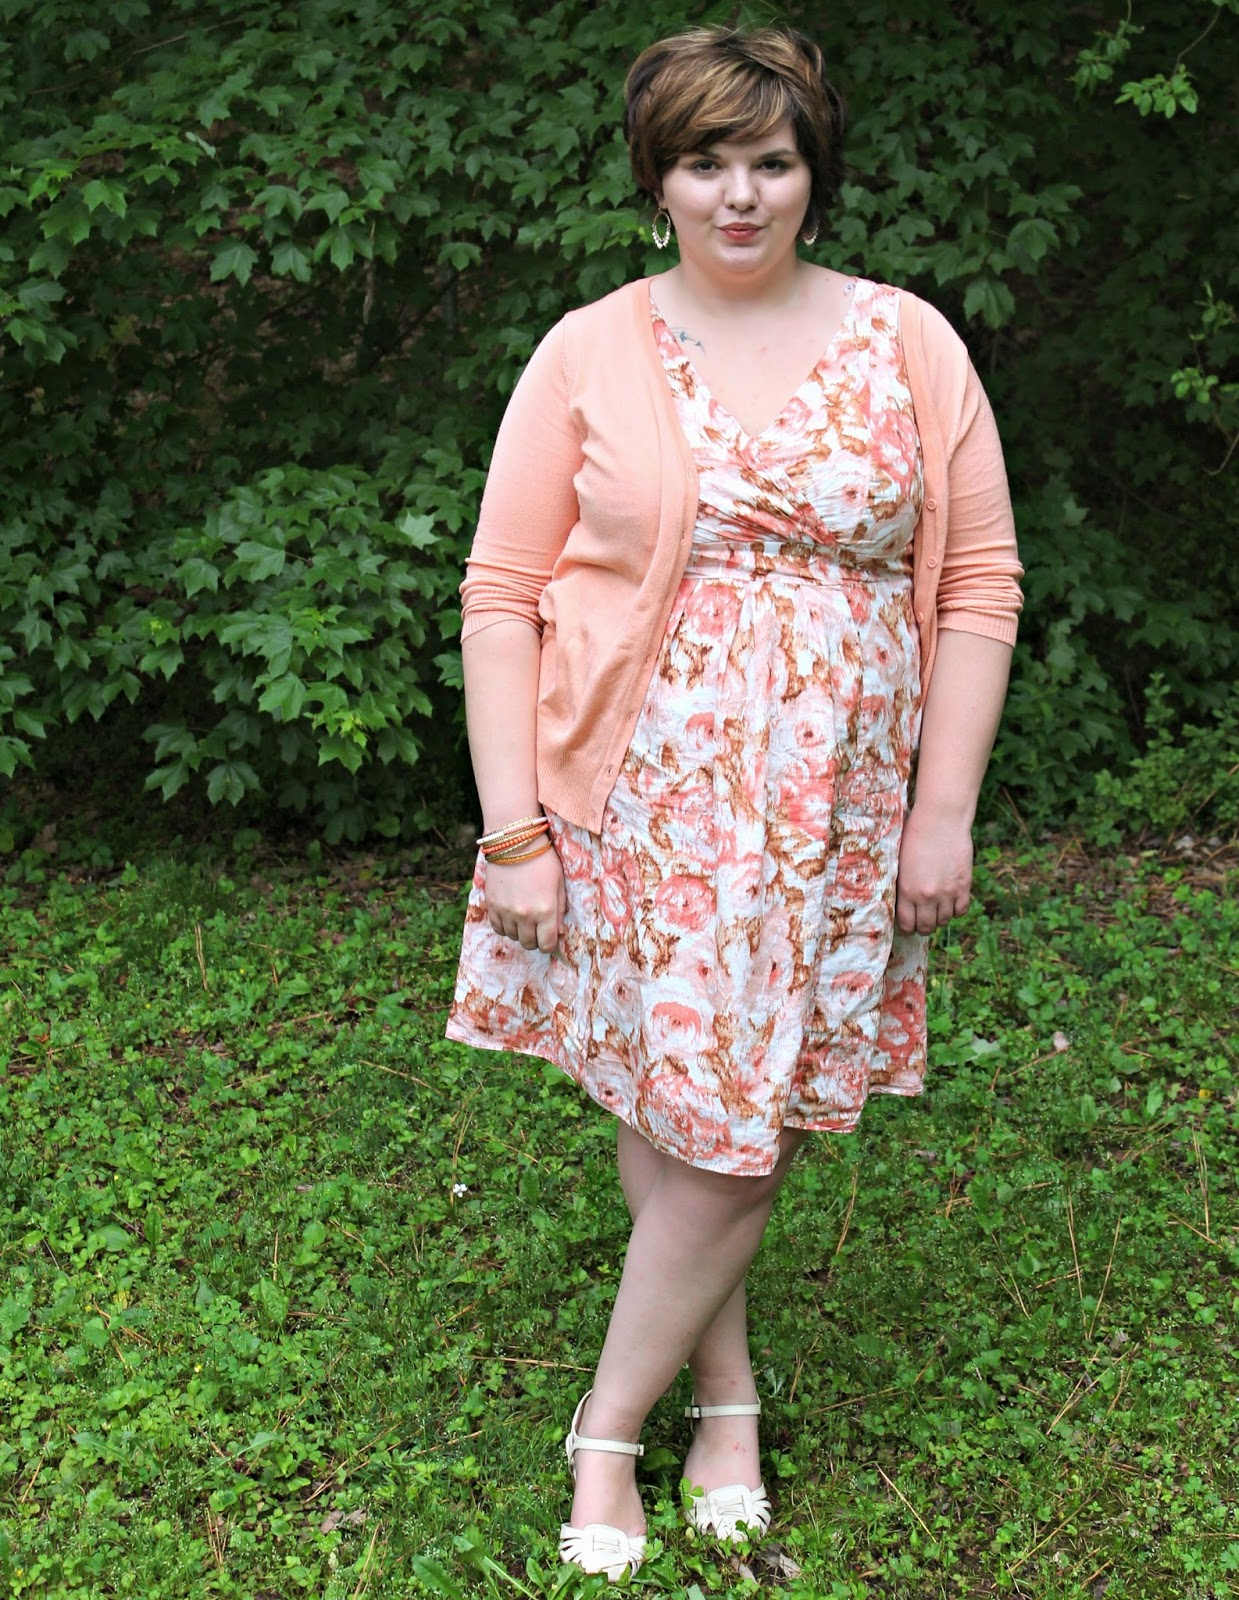 Hems for Her Trendy Plus Size Fashion for Women: April 2014